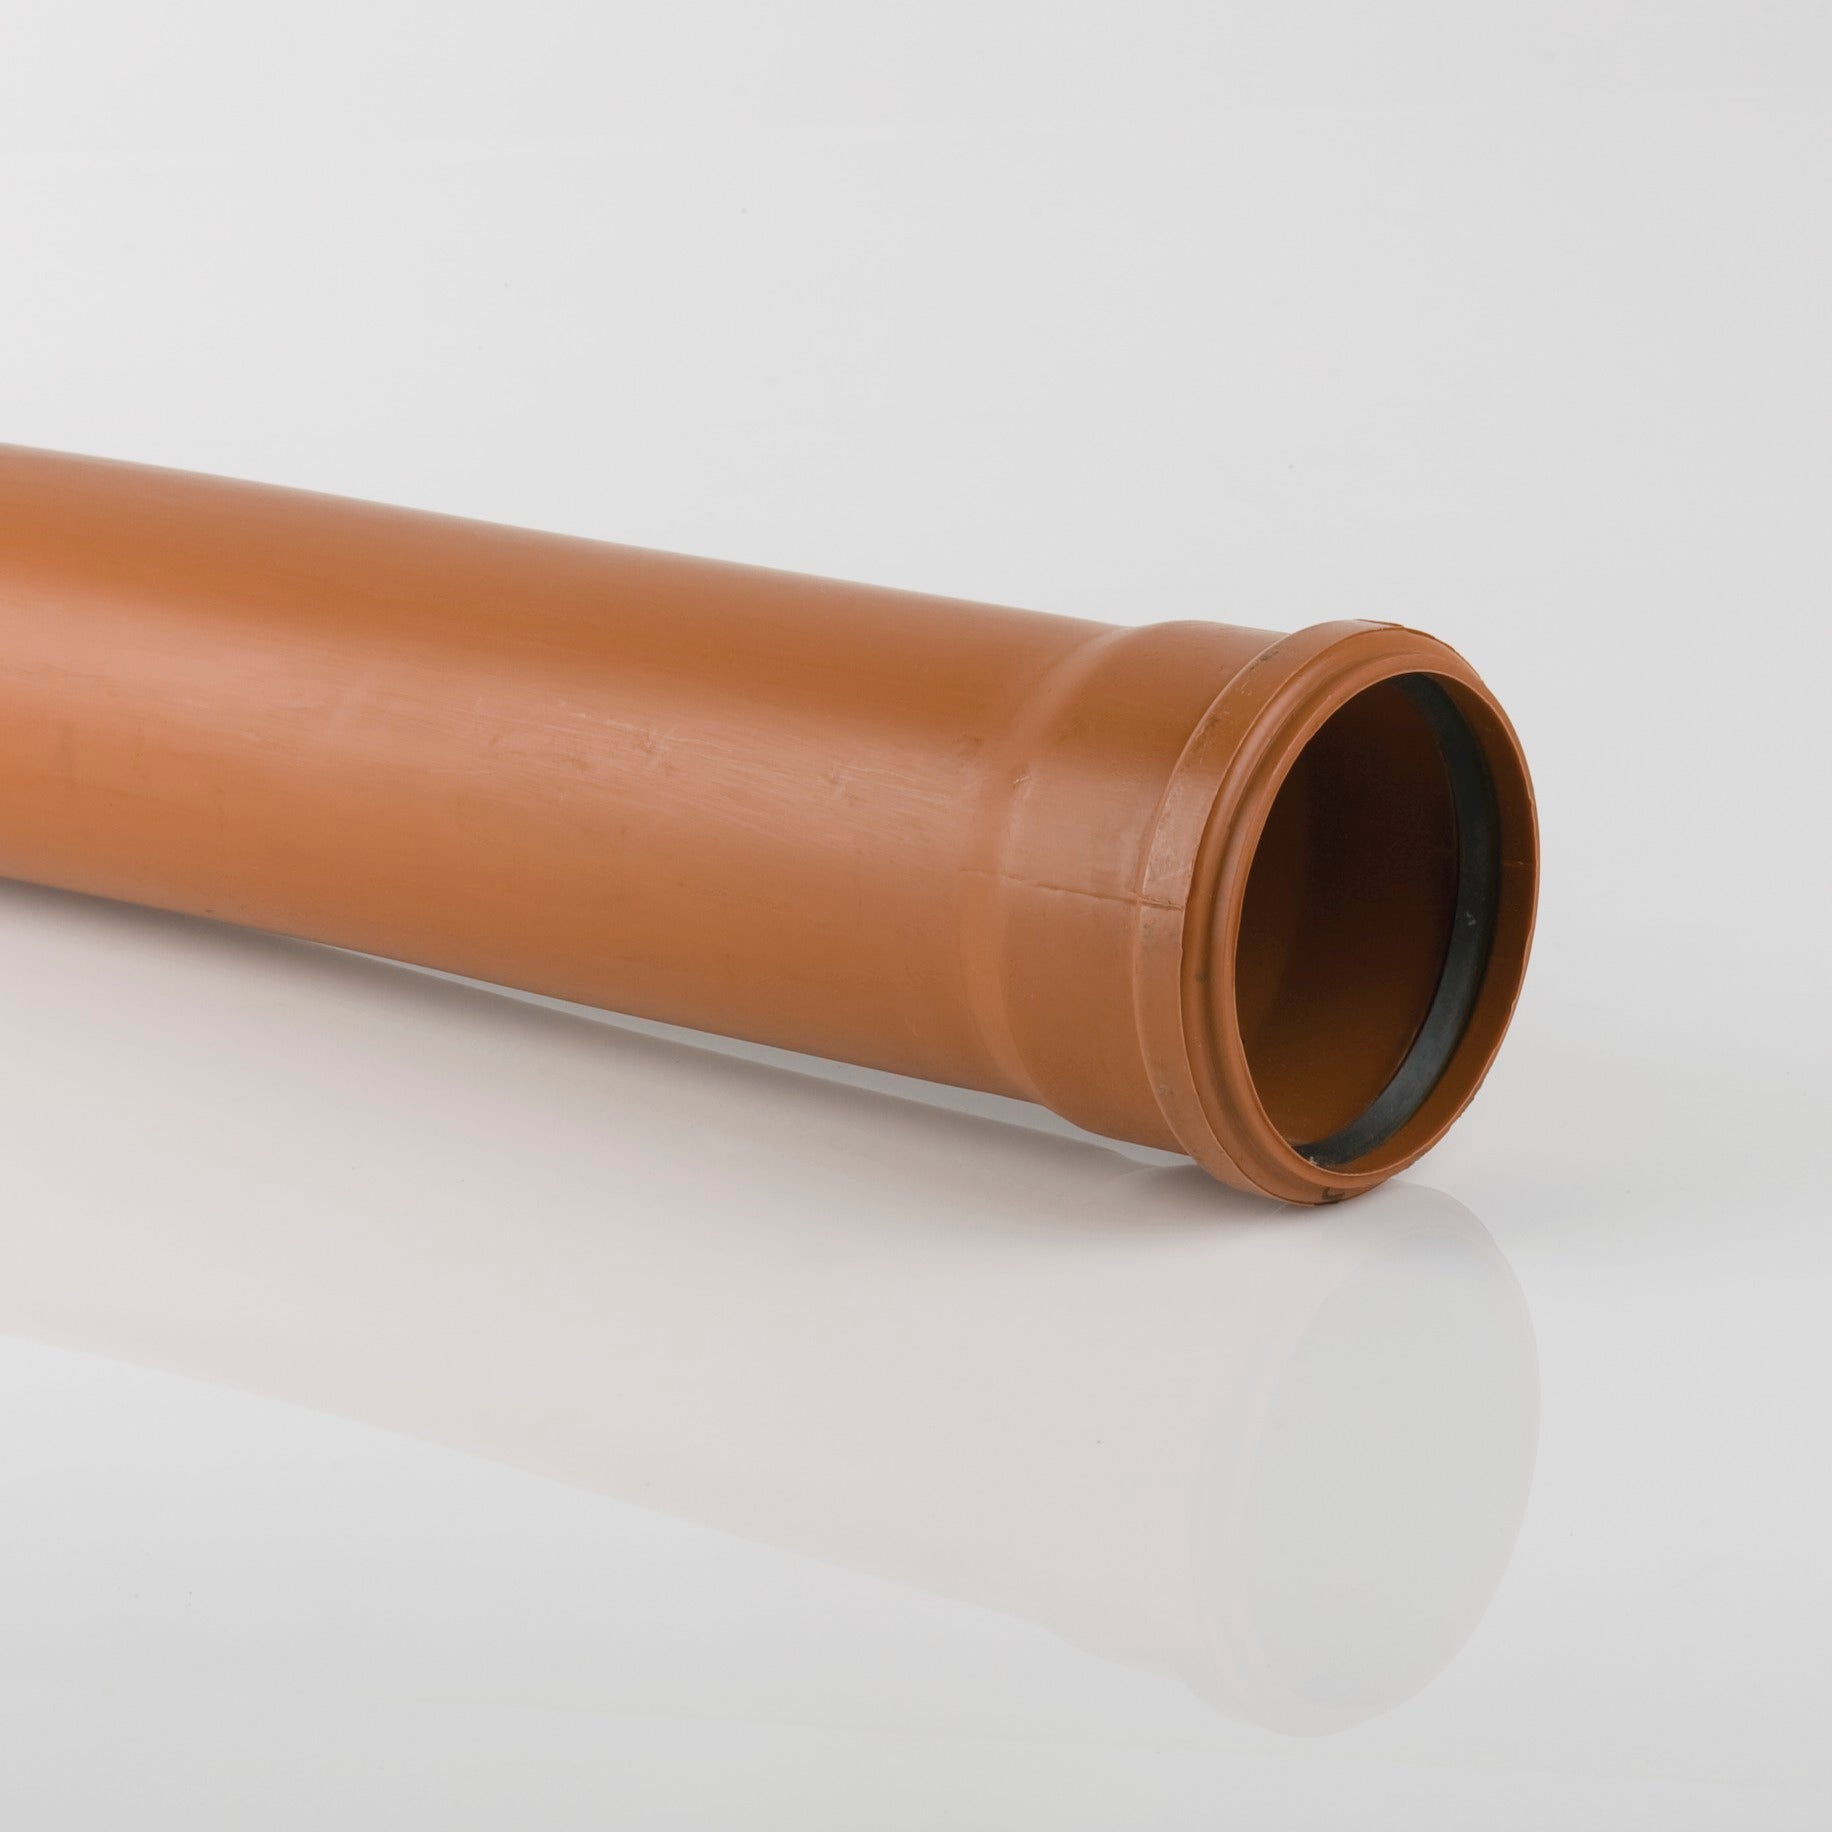 110mm Single Socket Drainage Pipe (6m | Terracotta Orange)